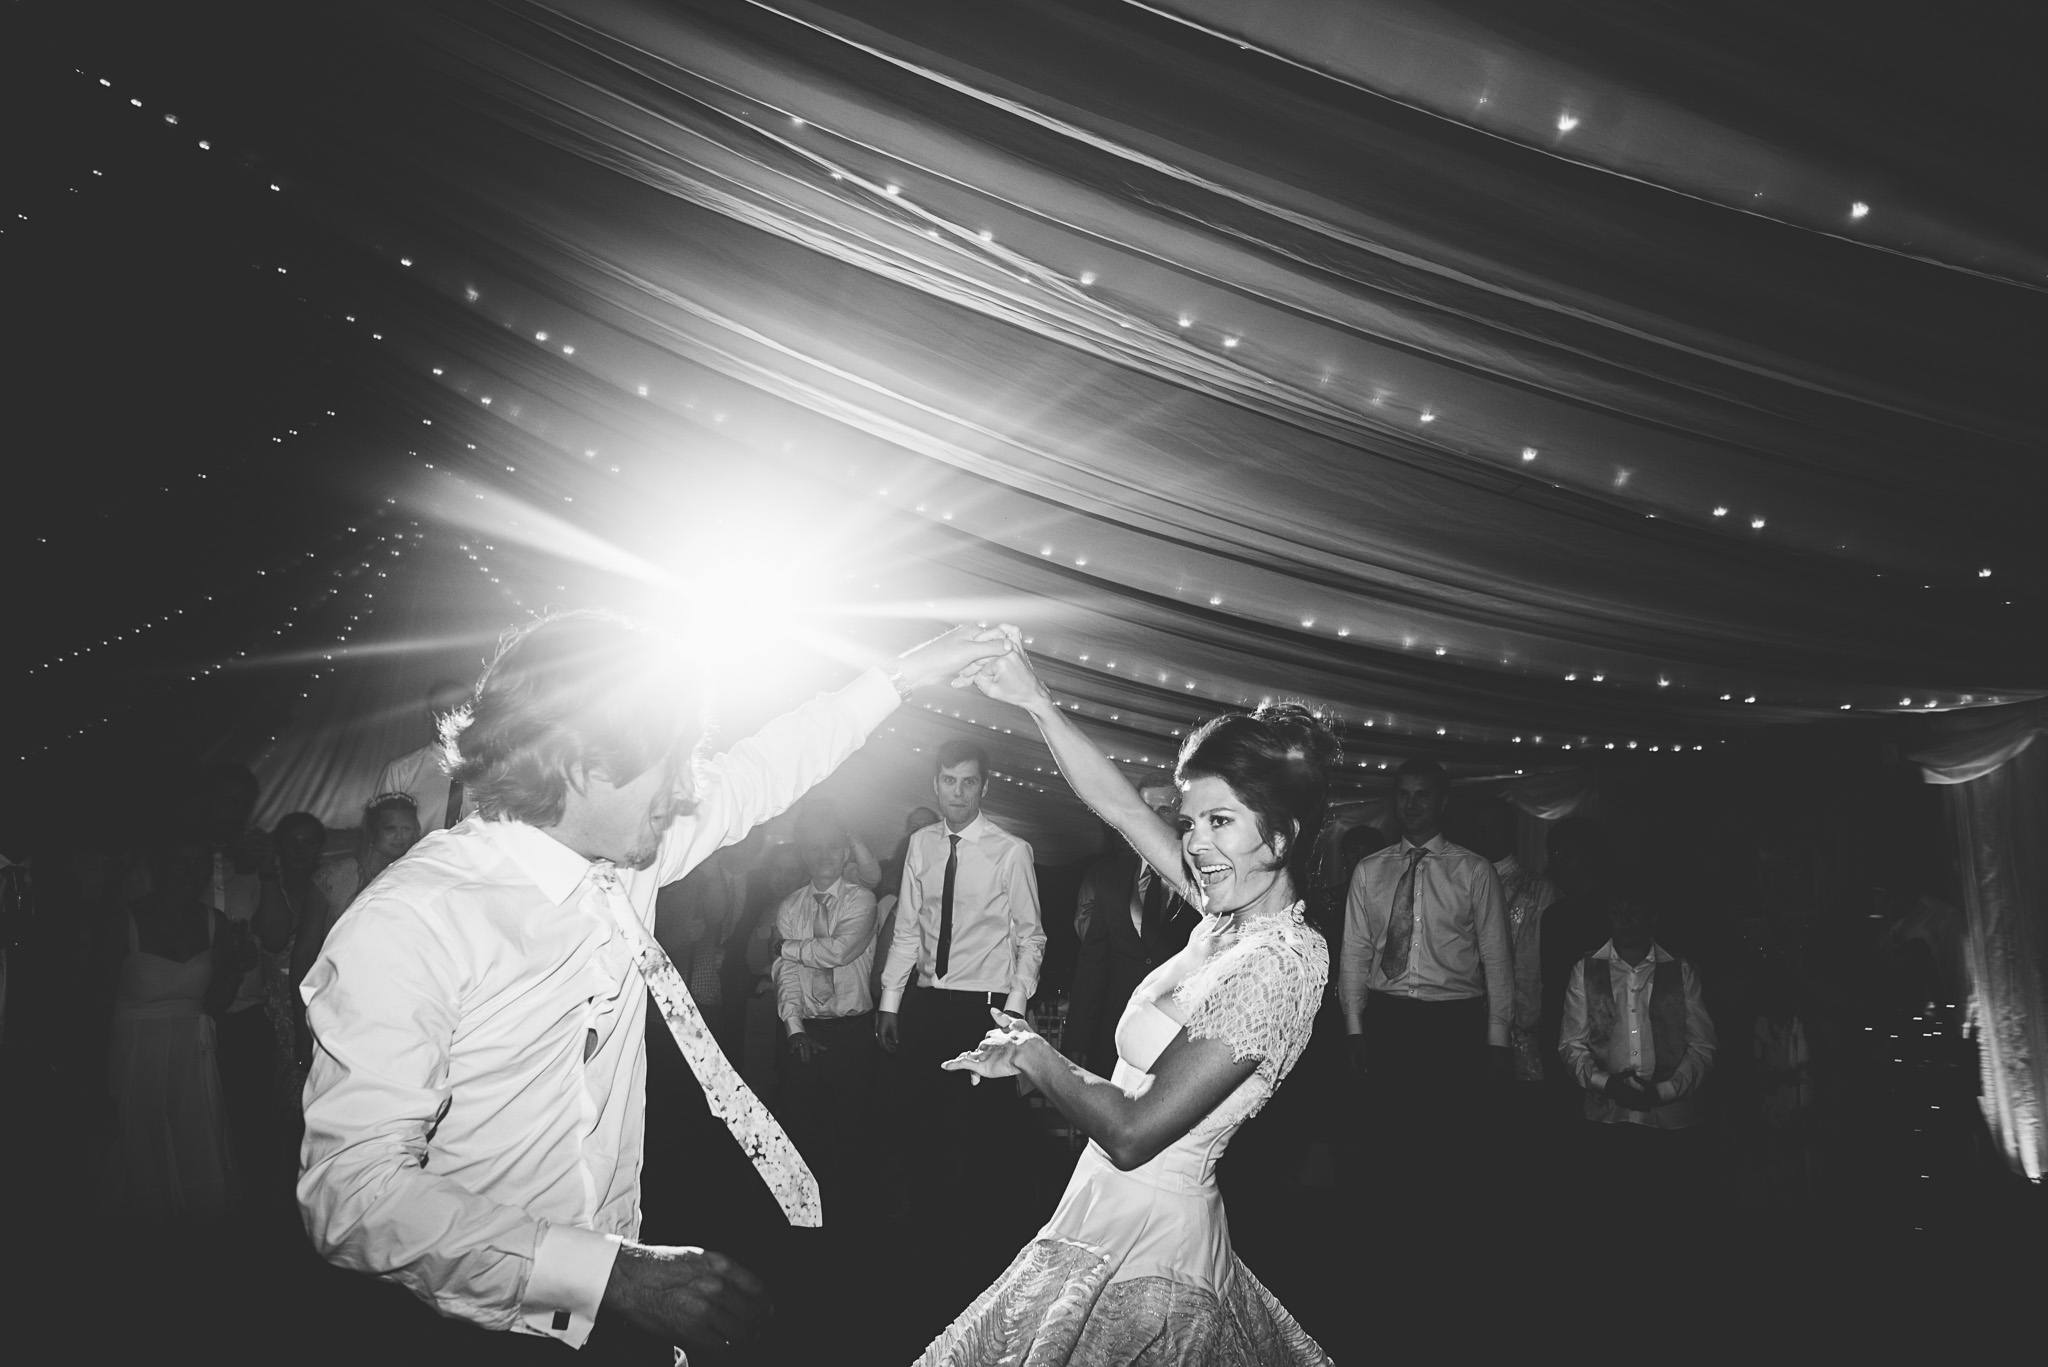 Lara & Jack Wedding 220815 by Barney Walters_1059_BW2_1083